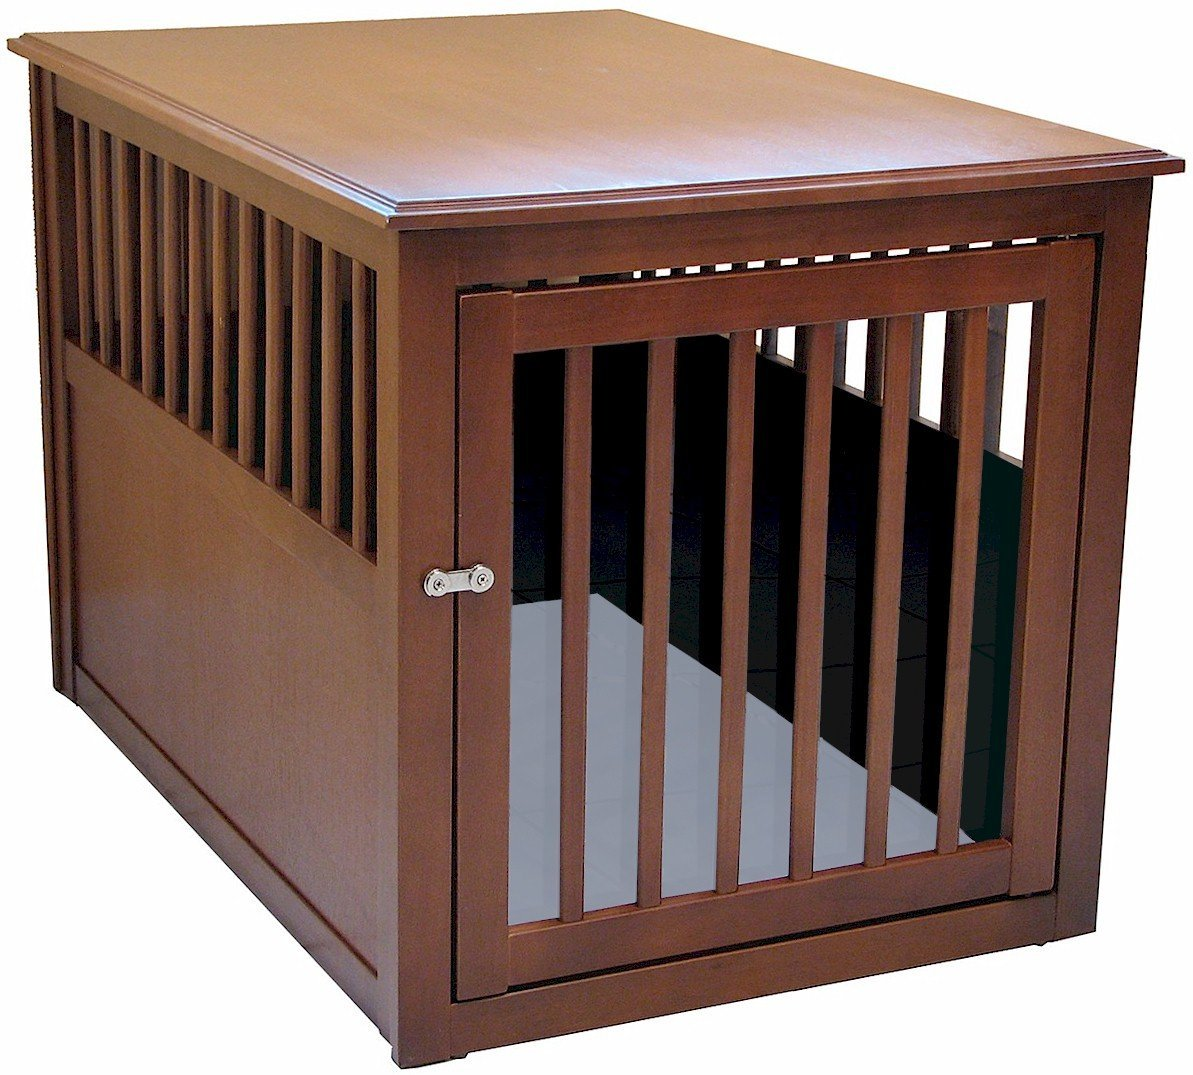 Crown Pet Products Pet Crate Wood Dog Crate Furniture End Table, Large Size with Mahogany Finish